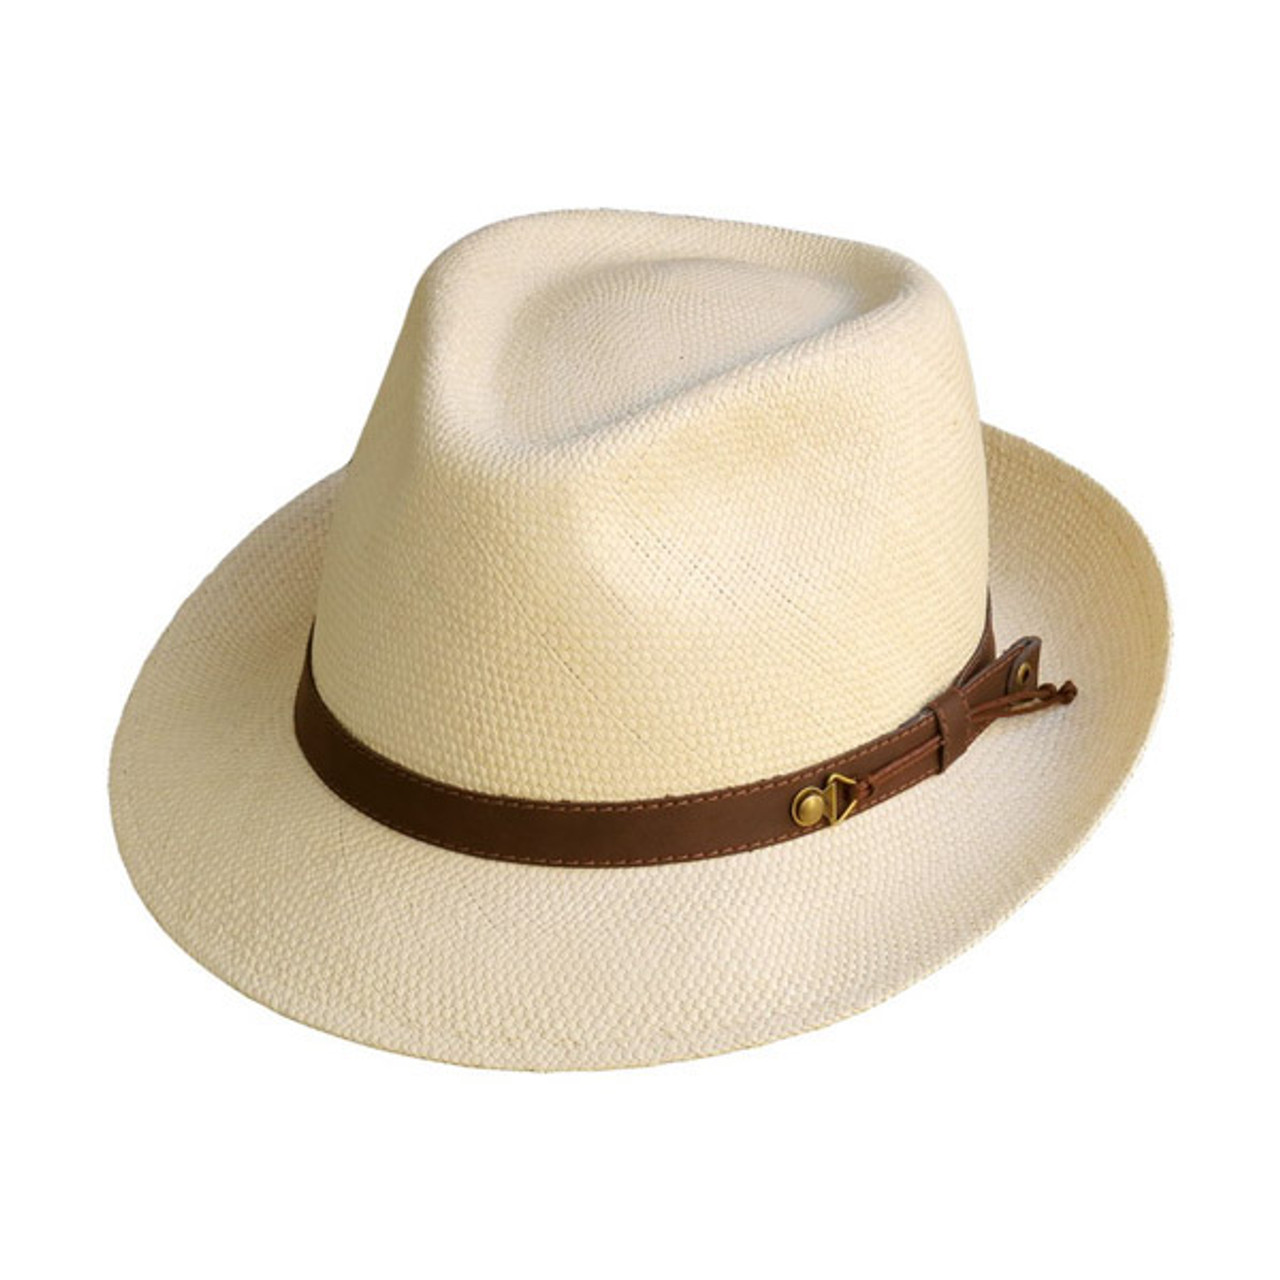 415031a8 Austral Hats   Beige Panama Hat with Brown Band   Hats Unlimited